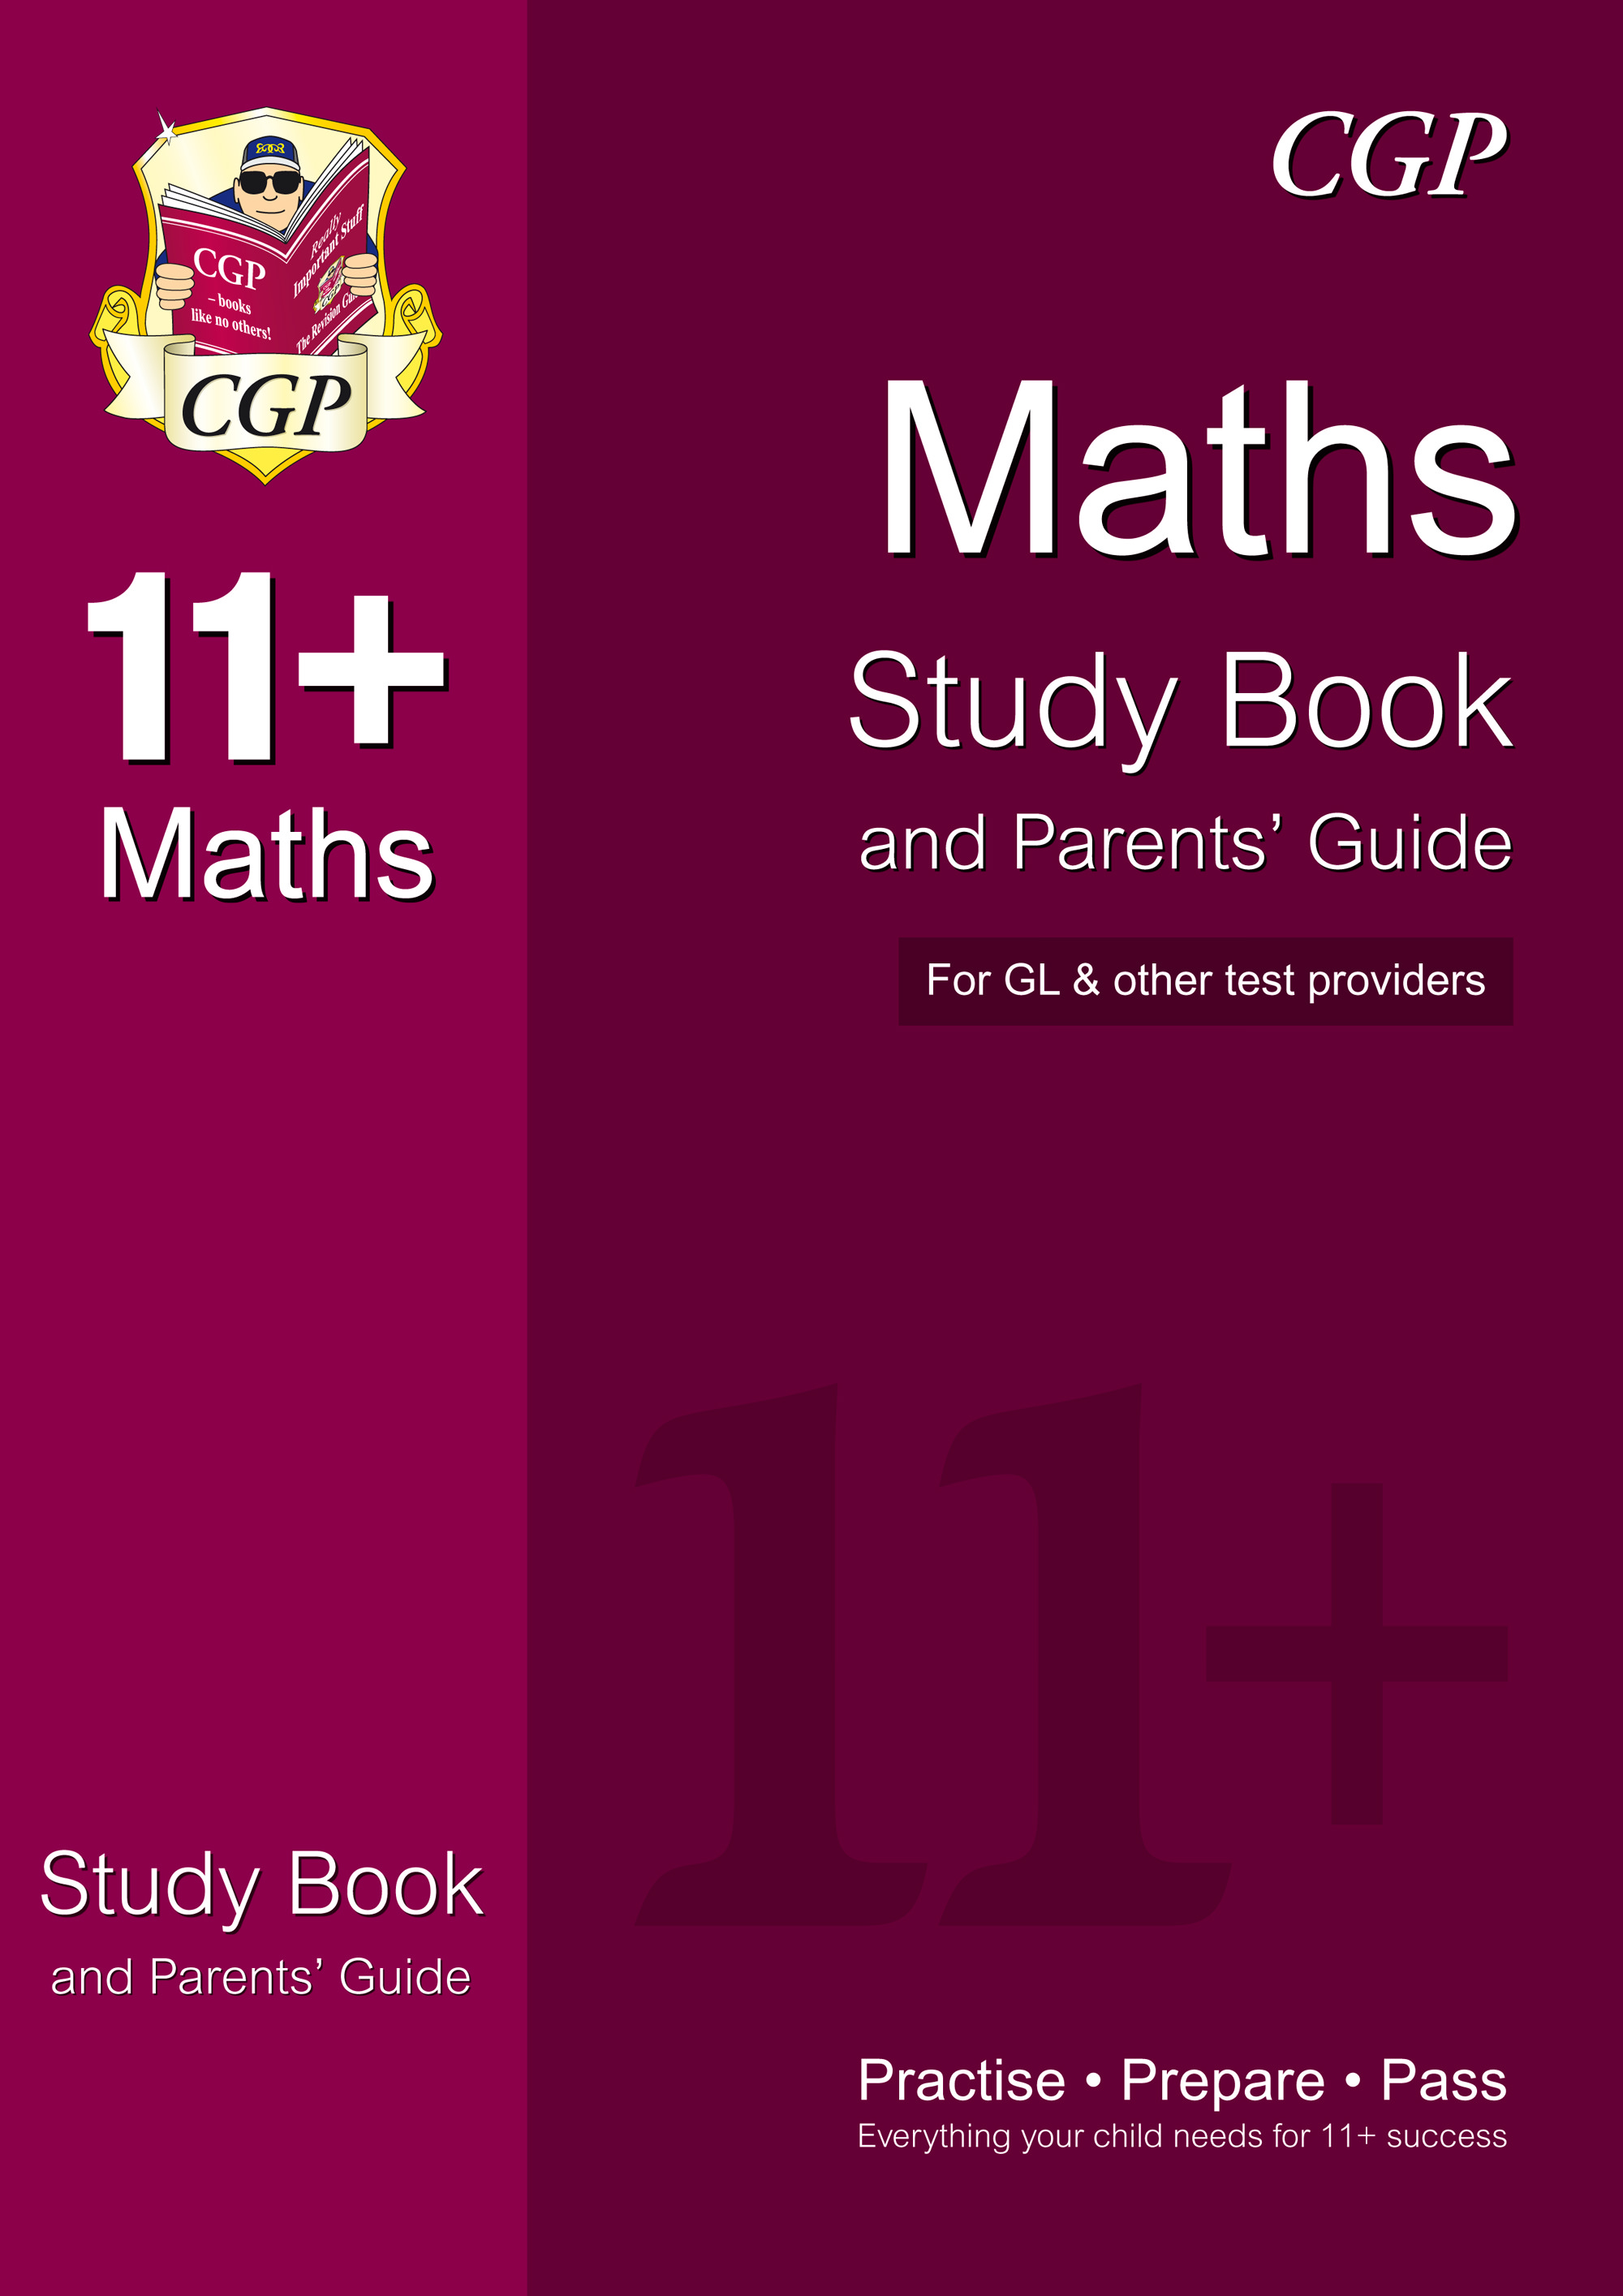 MHRE1 - 11+ Maths Study Book and Parents' Guide (for GL & Other Test Providers)